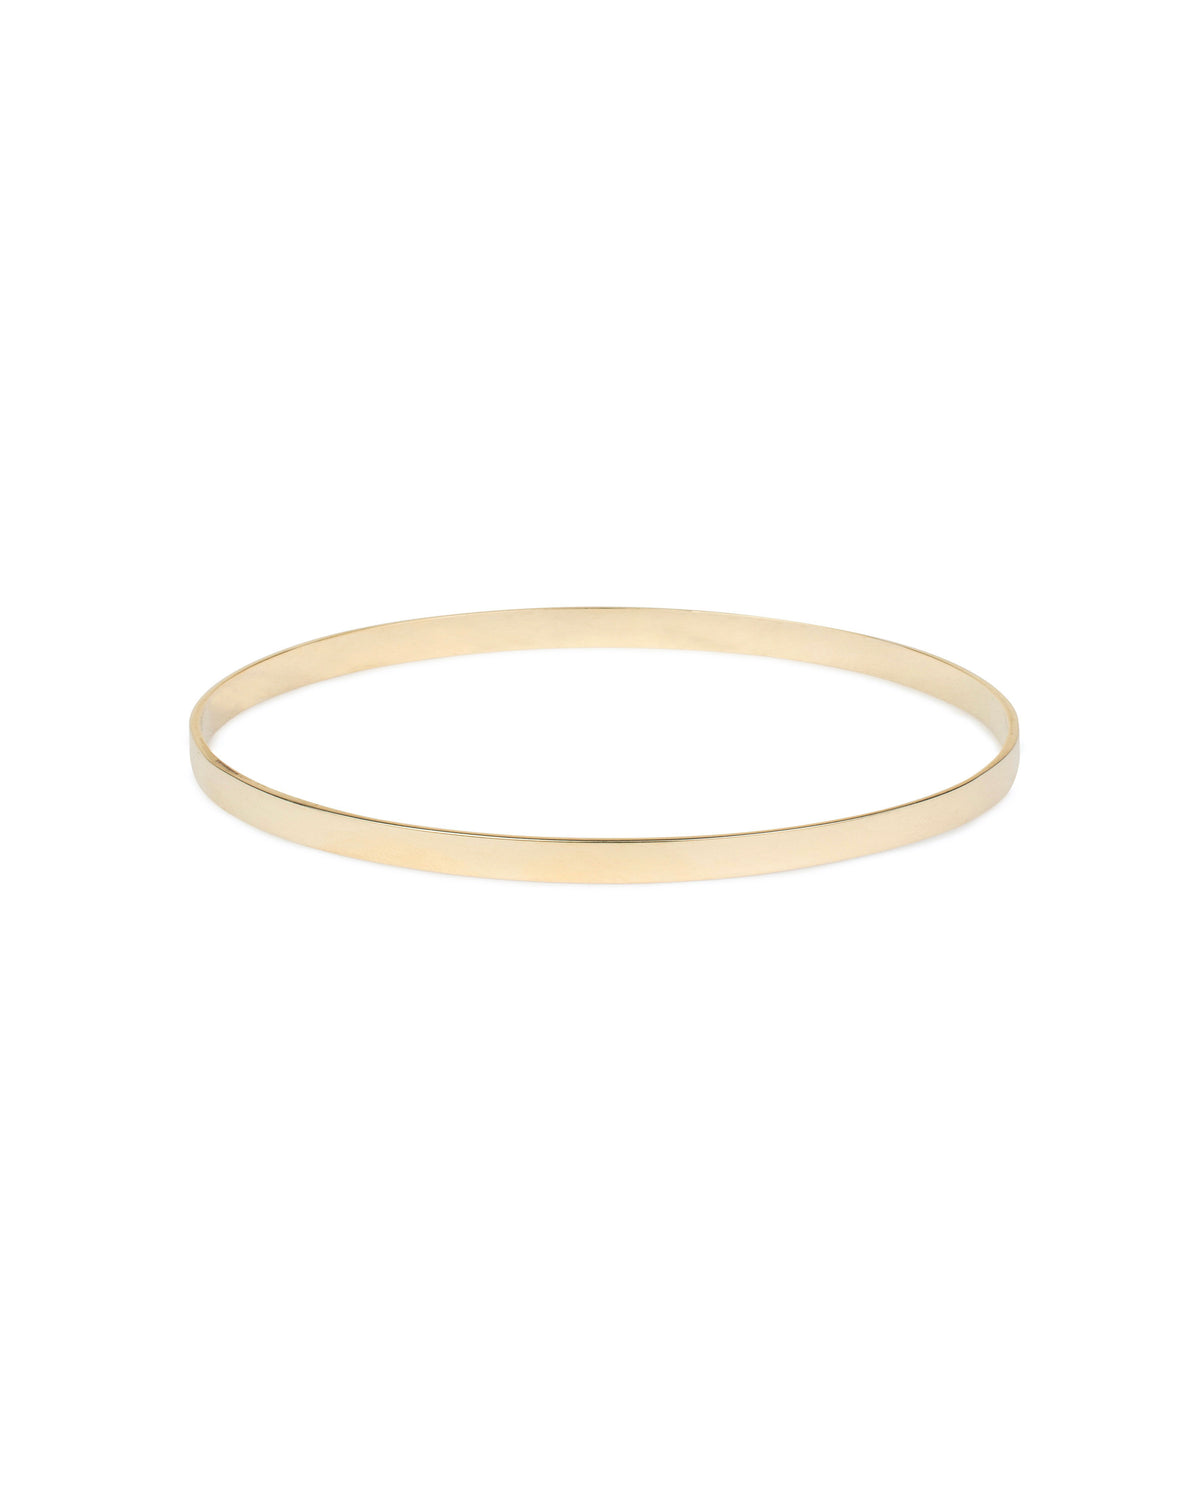 UPPER ARM BANGLE